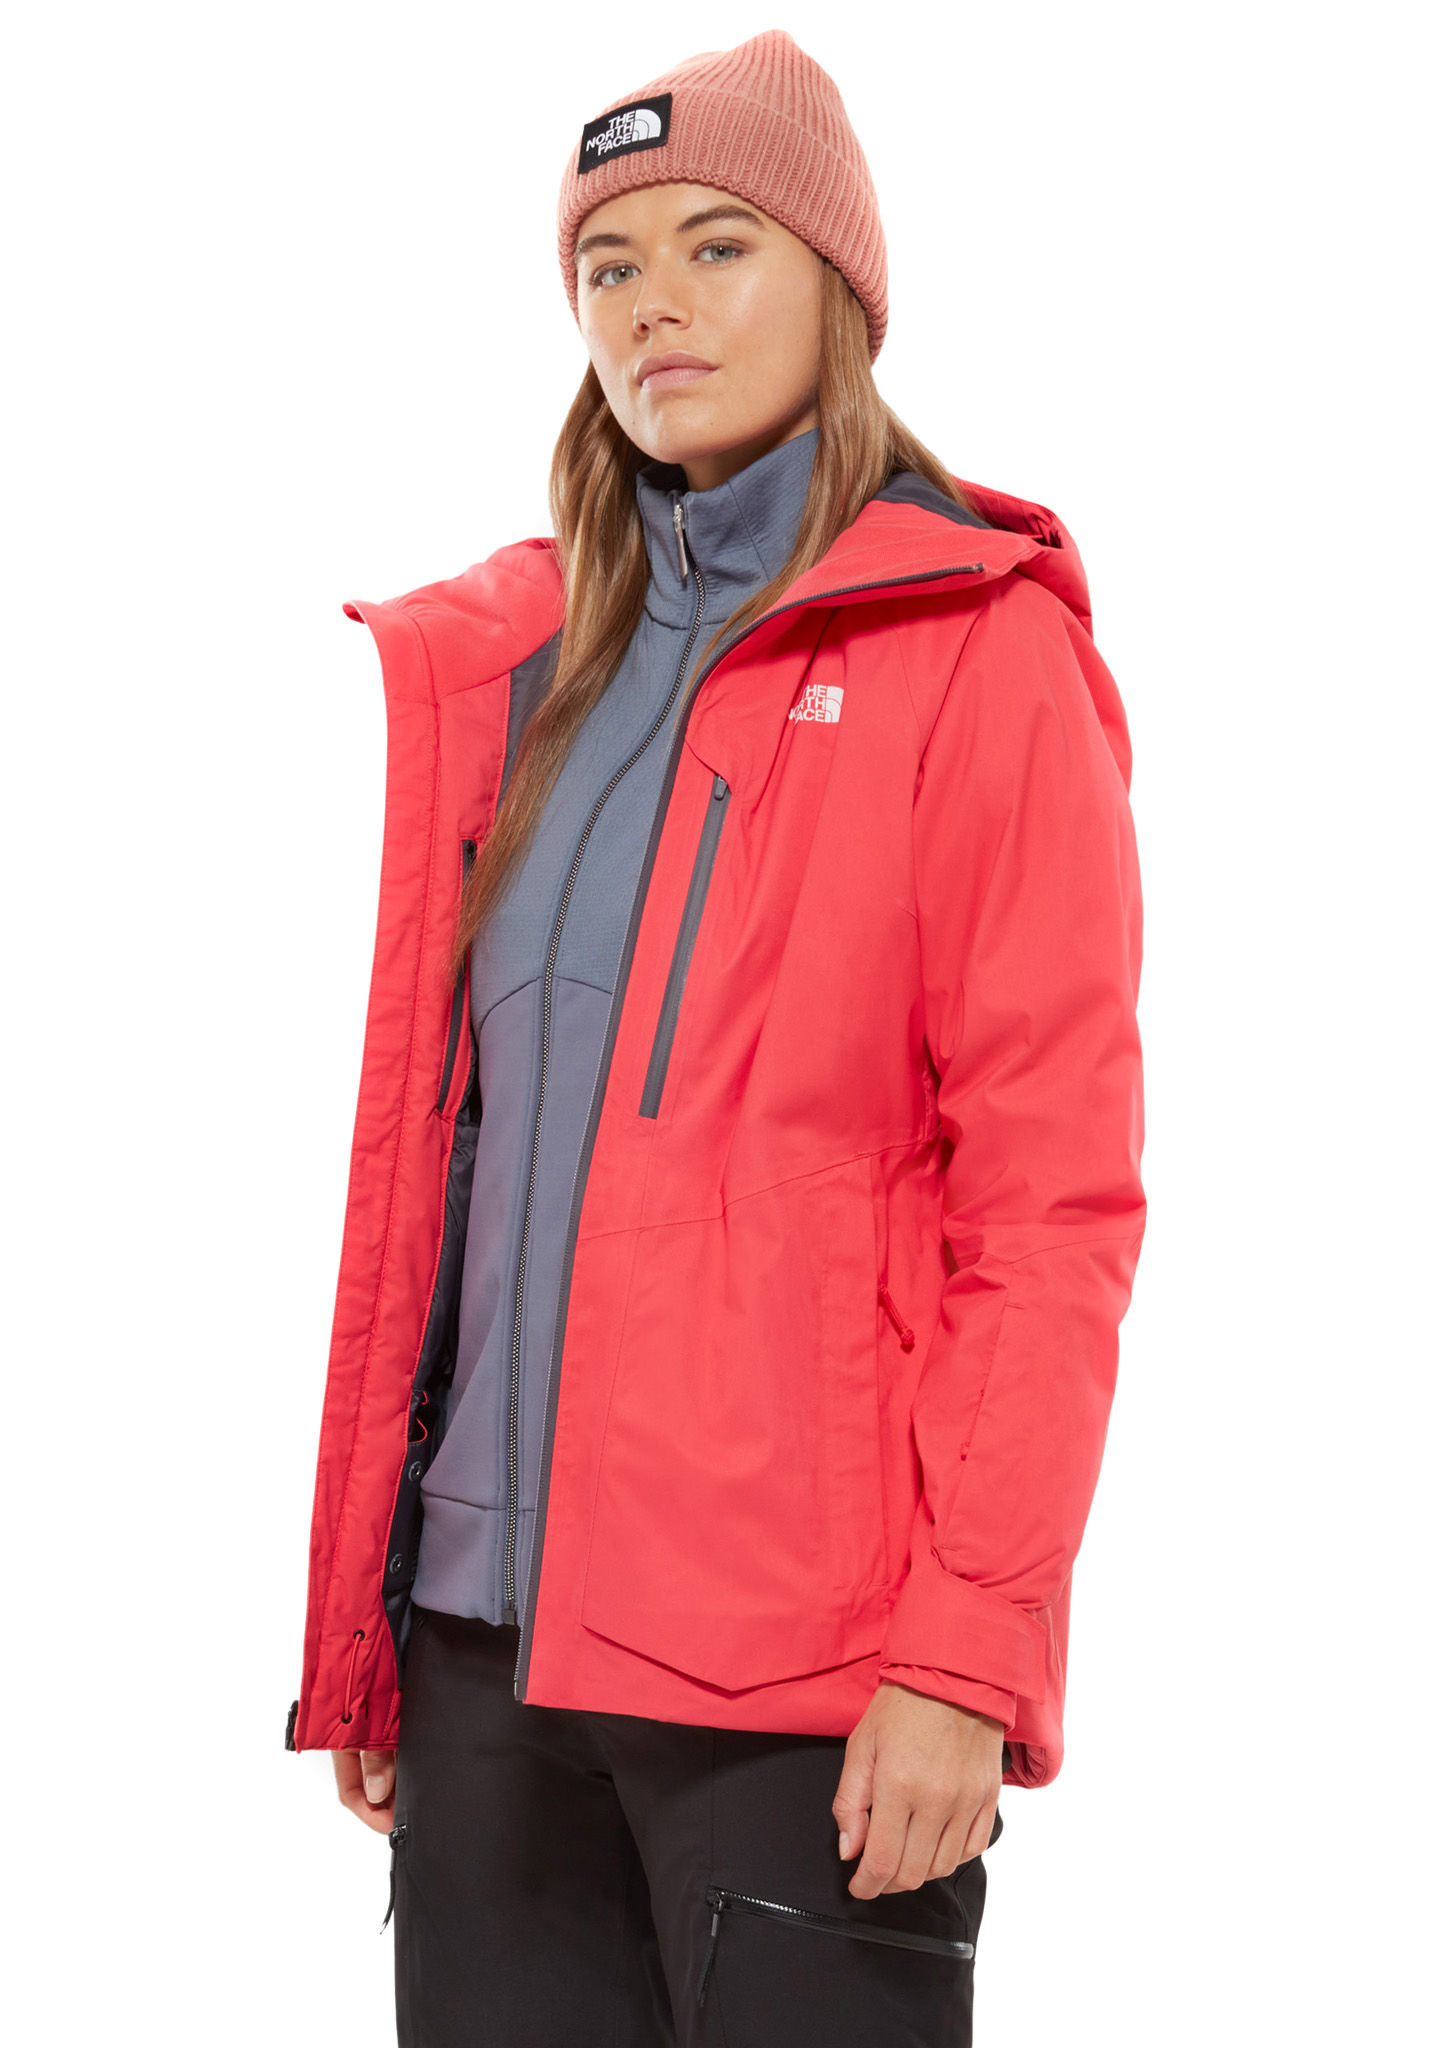 THE NORTH FACE Sickline - Ski Jacket for Women - Pink - Planet Sports 03ae0869d5